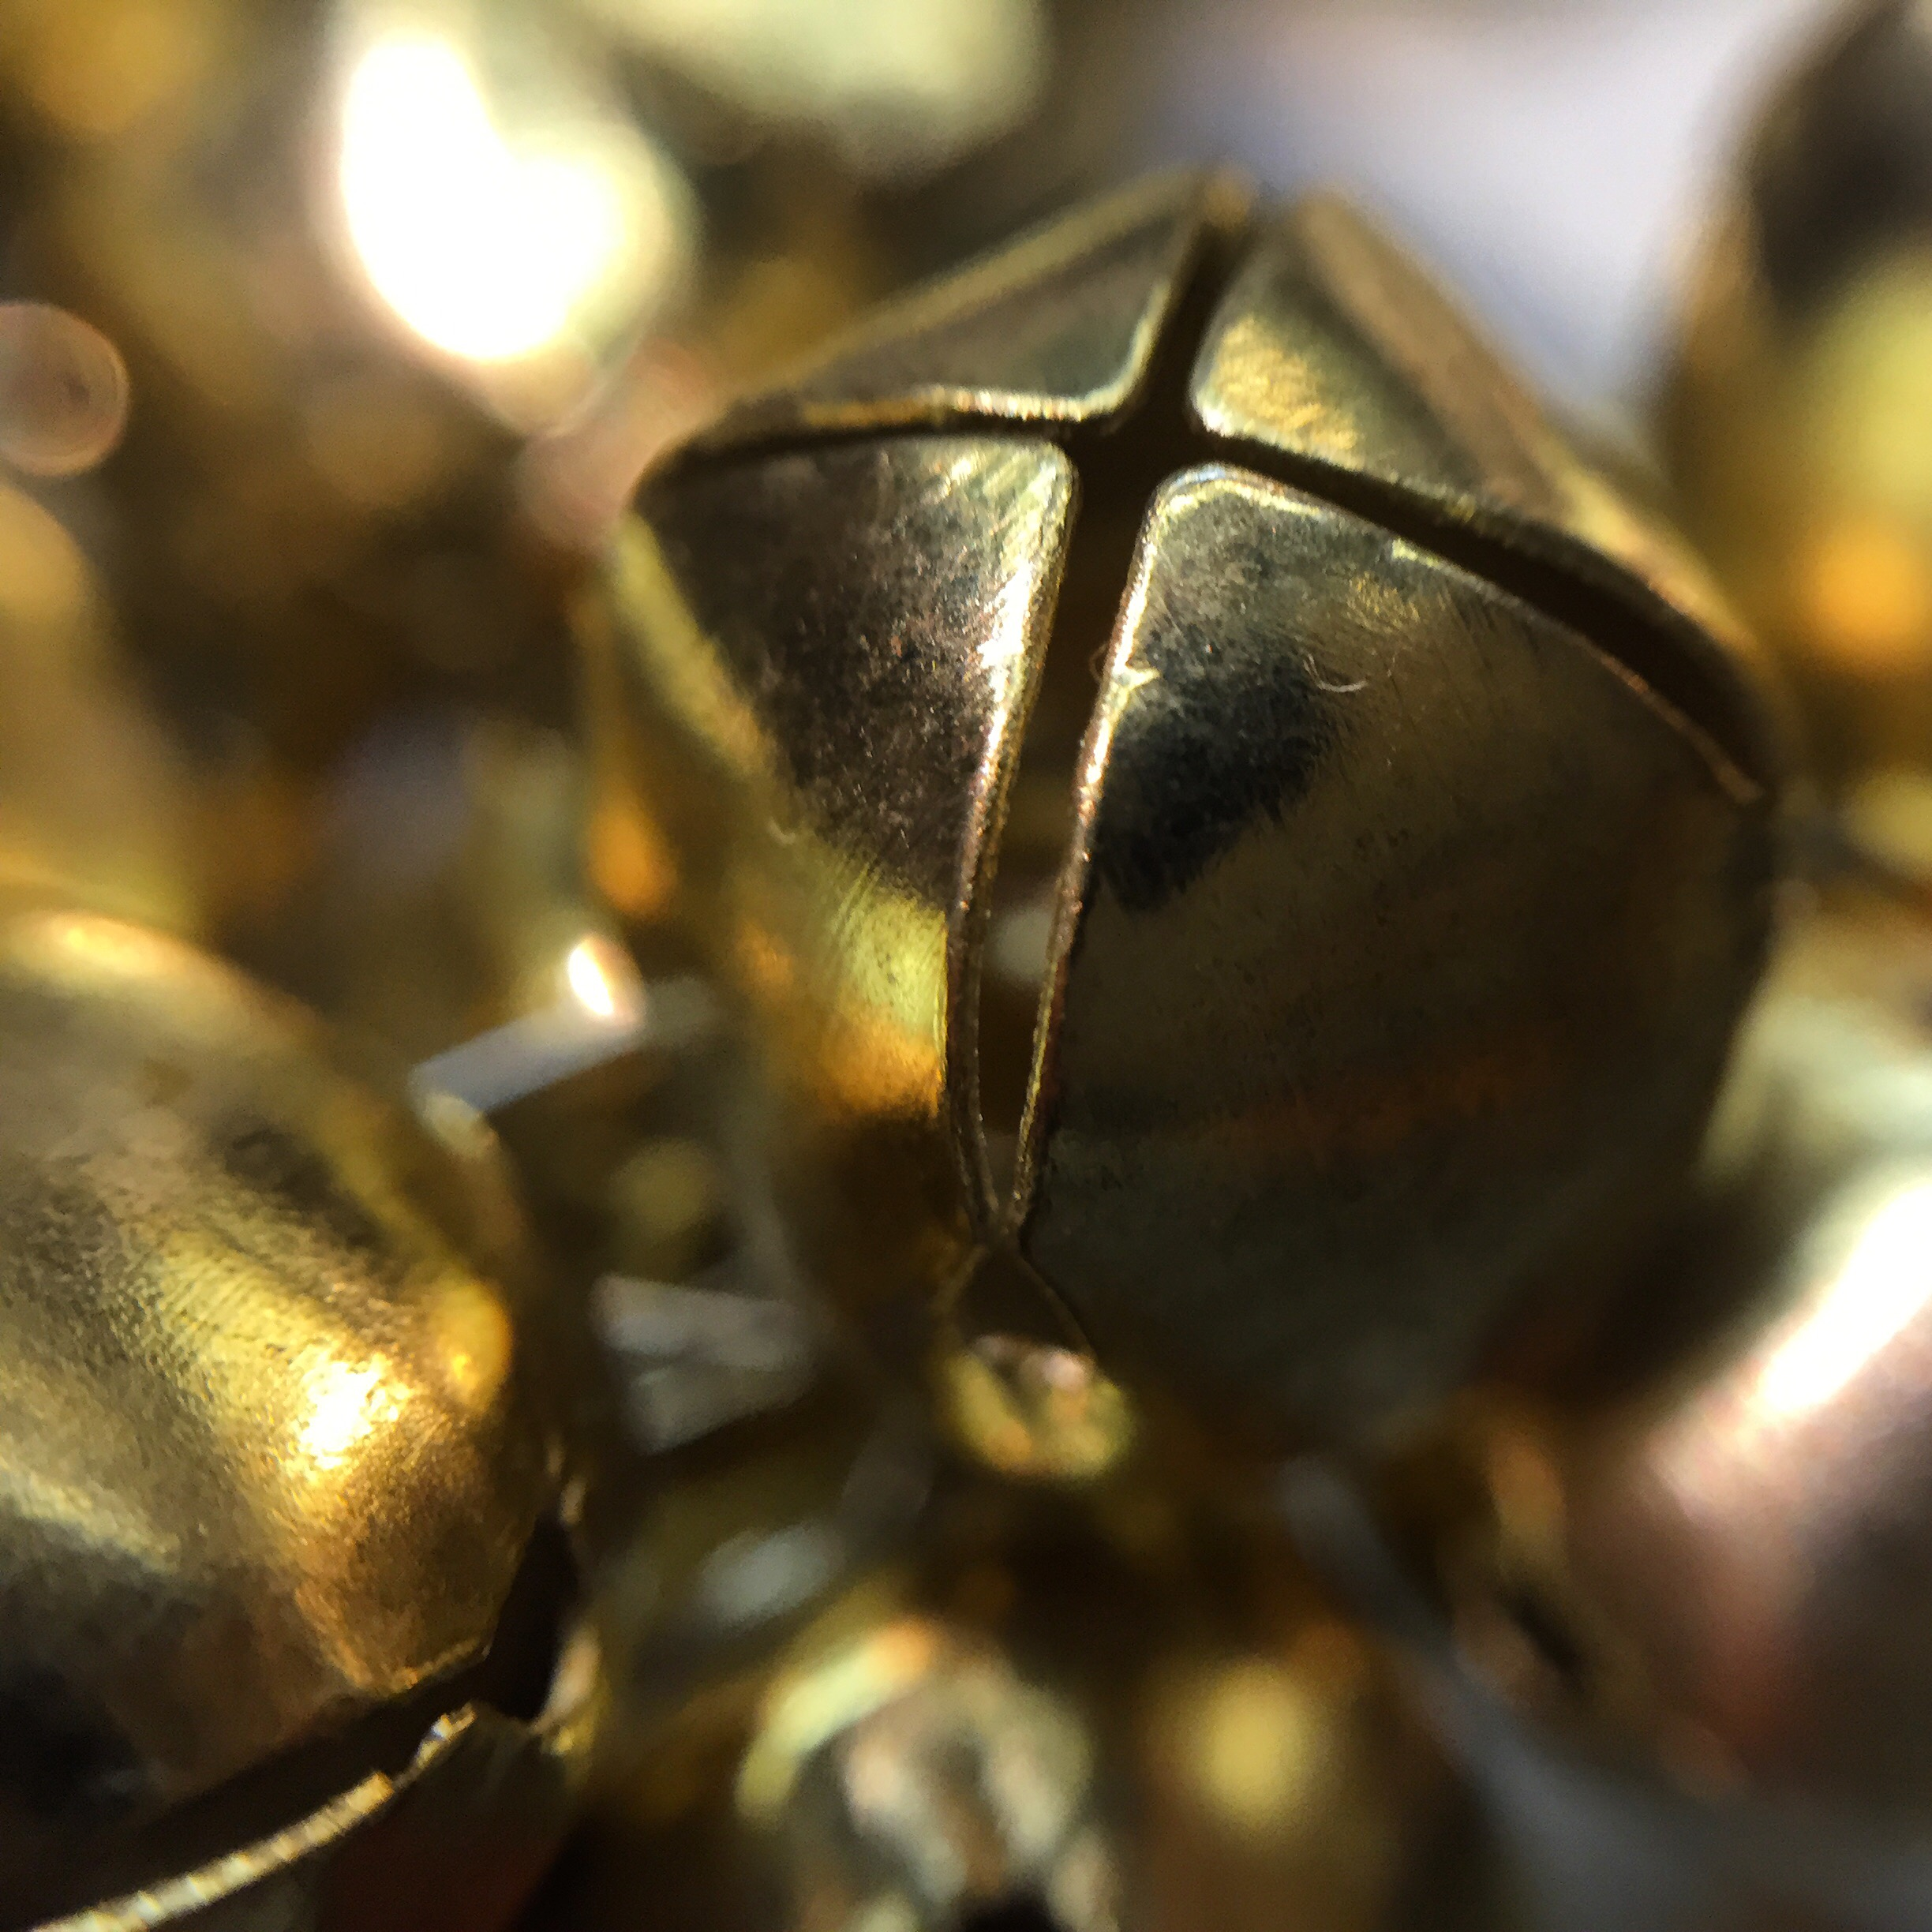 Macro photo, Jingle bells